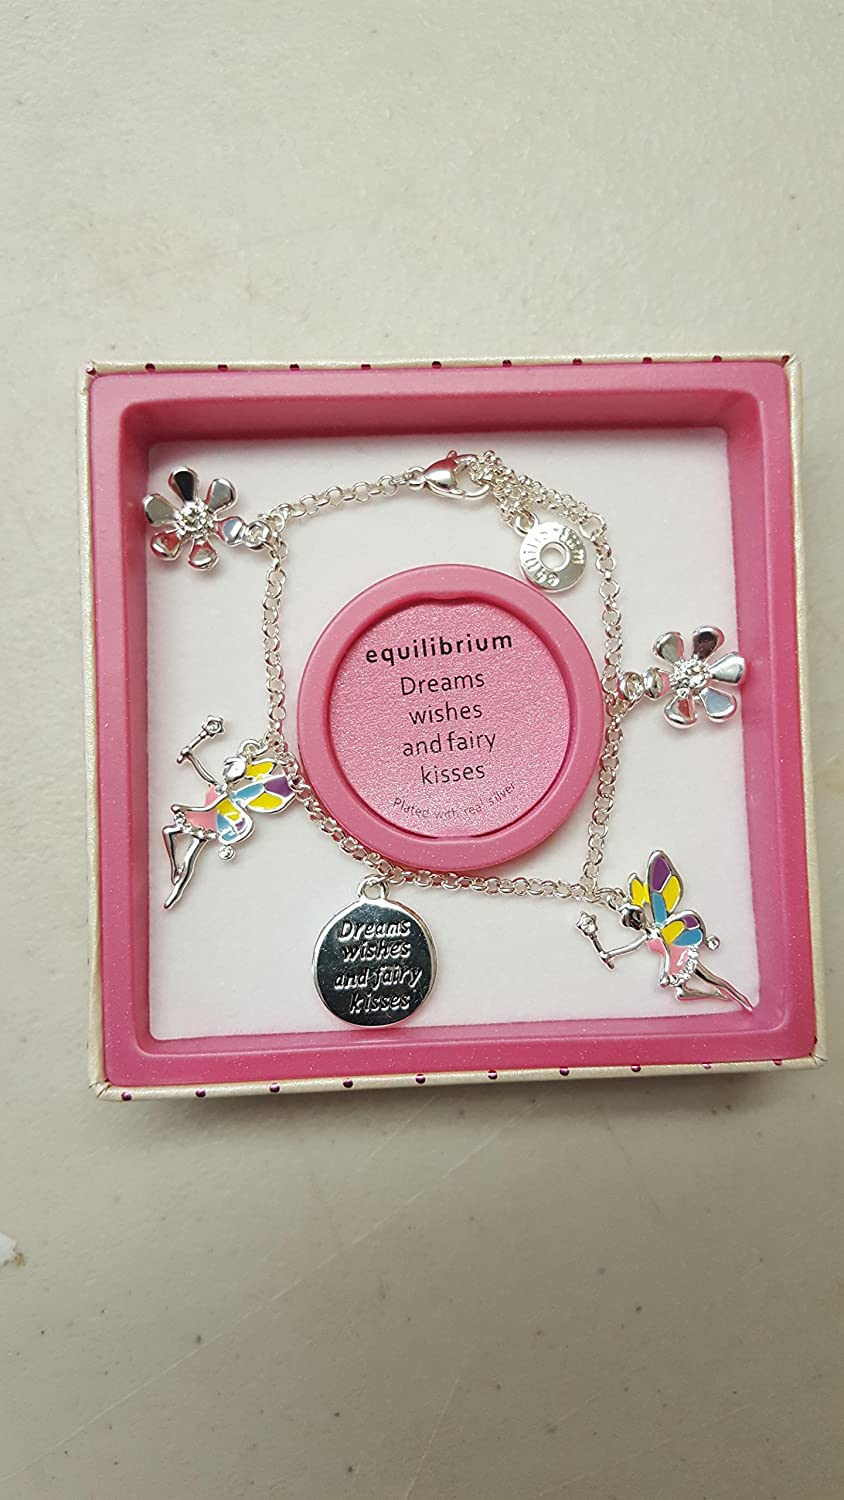 Dreams Wishes and Fairy Kisses Novelty Childrens Bracelet Girls Jewellery